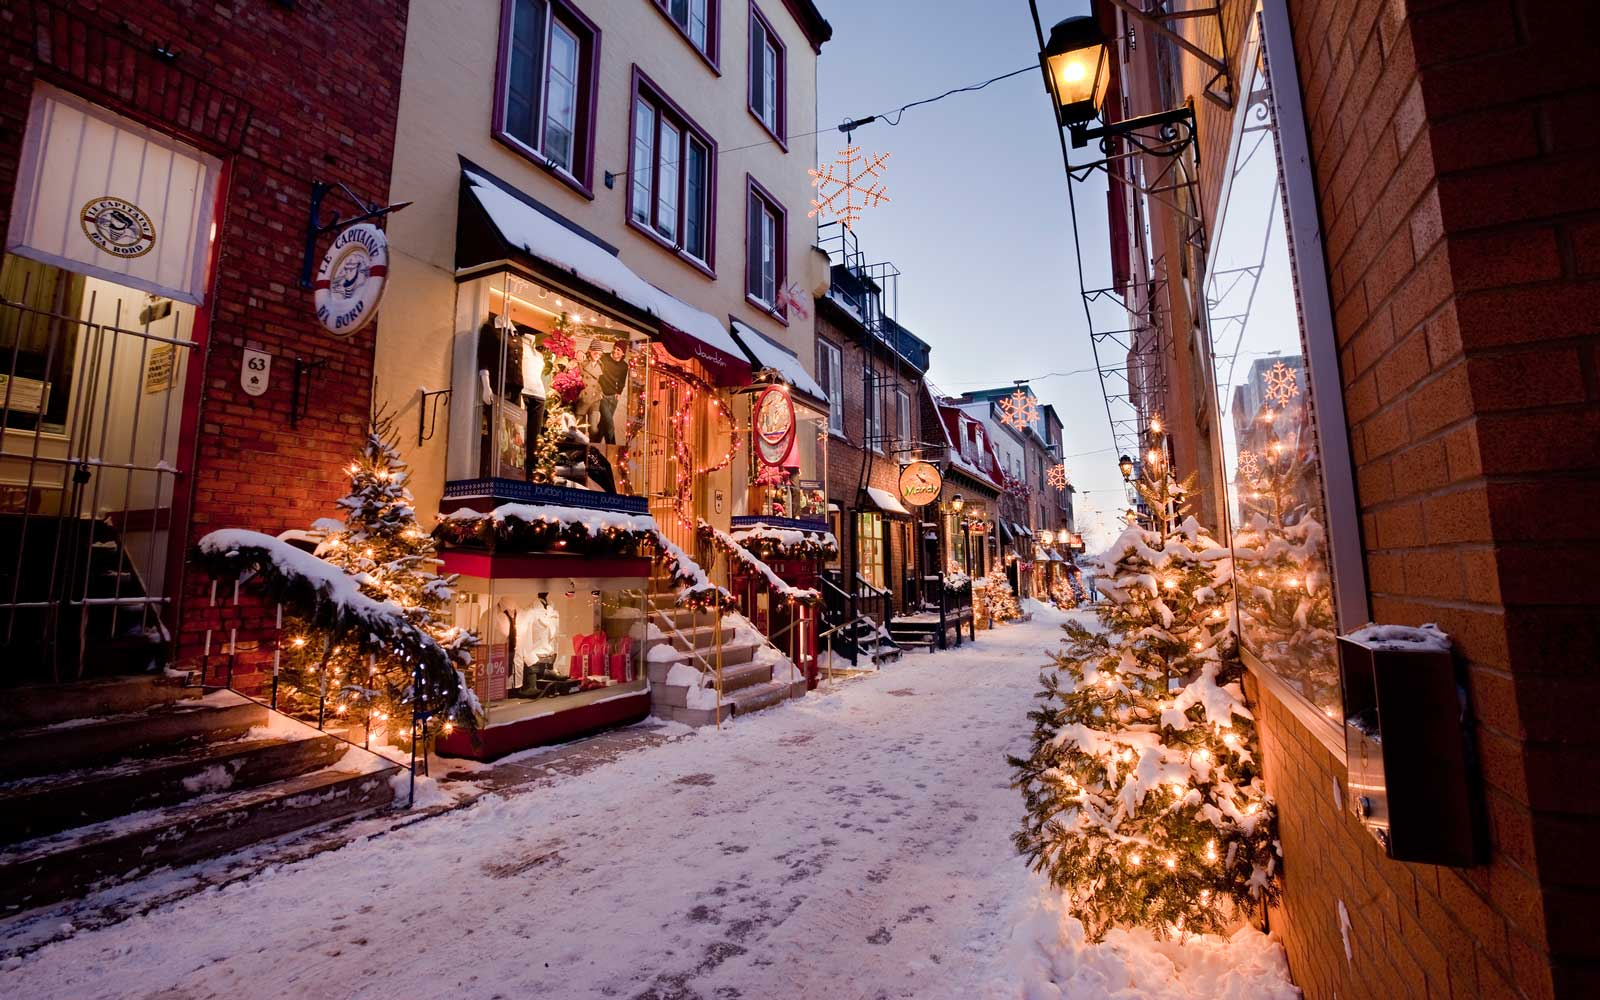 Rue du Petit-Champlain in the Quartier Petit Champlain - the heart of New France, decorated festively for the Christmas holidays in the historic old City of Quebec